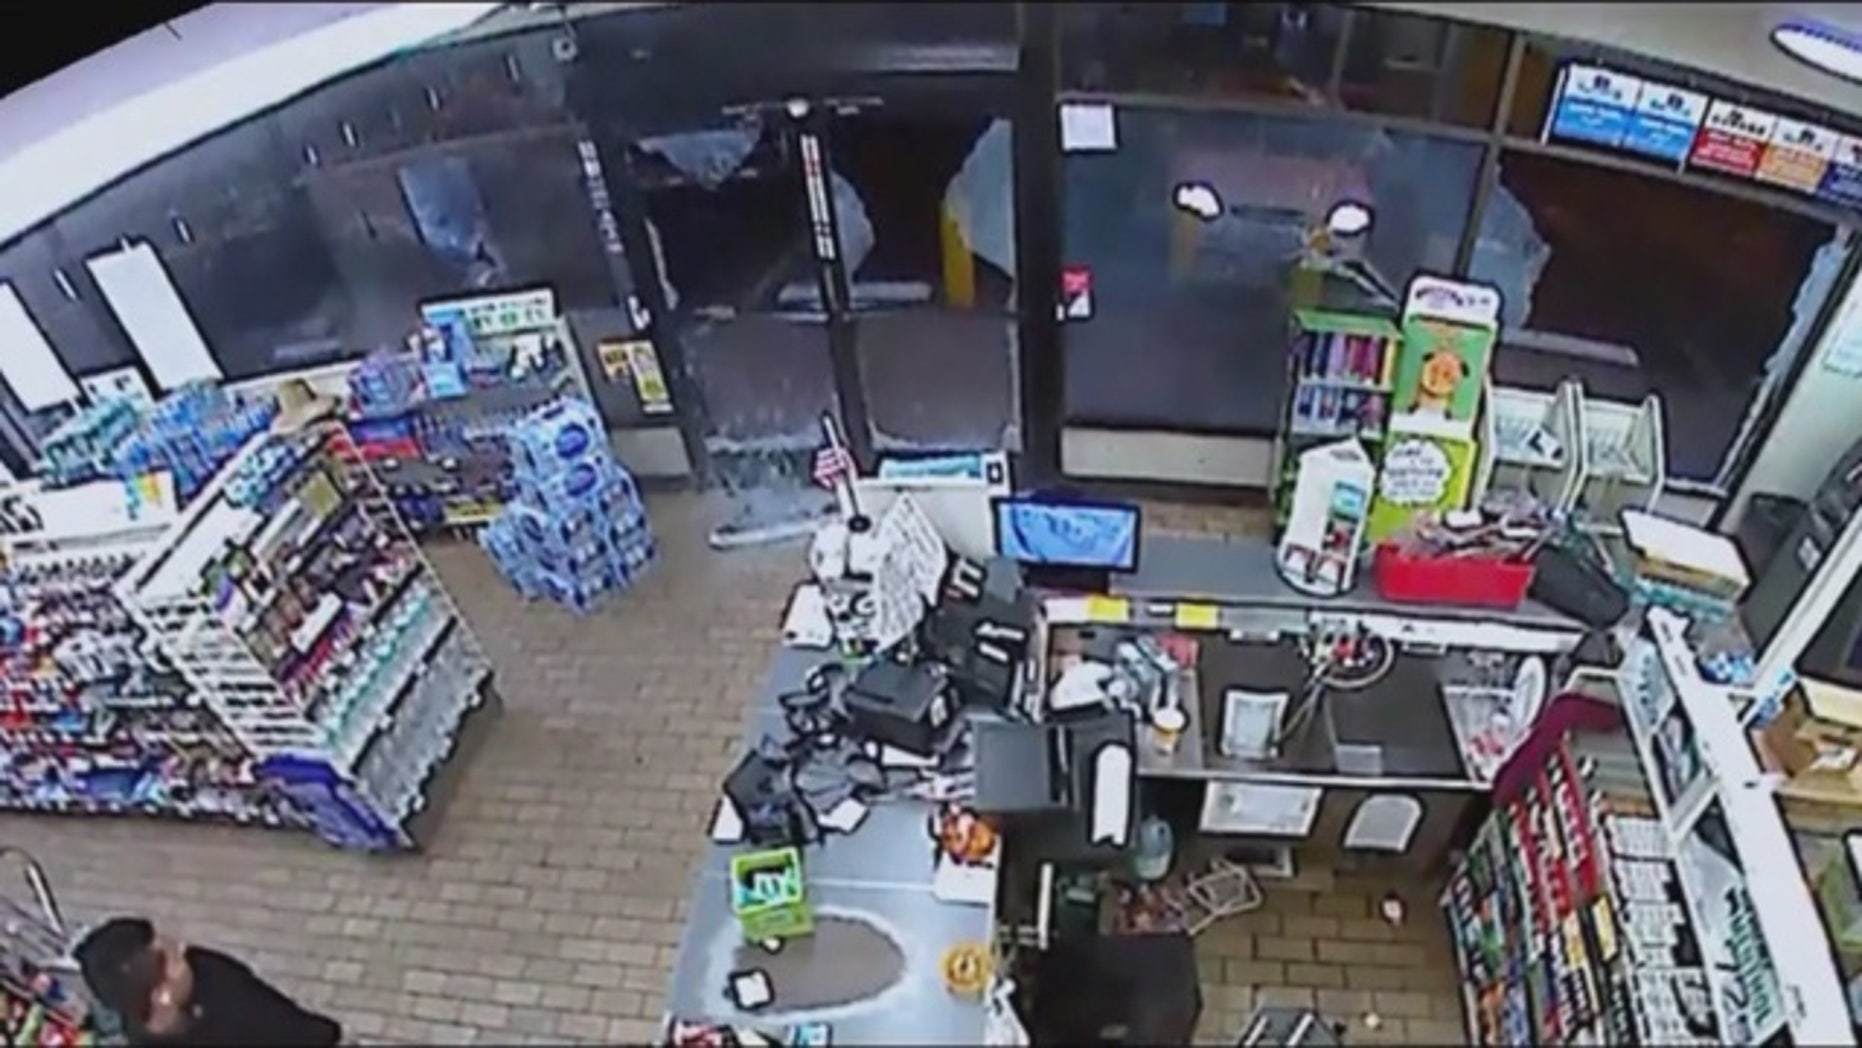 A vandal in California is being sought by Santa Ana police for smashing the windows of a 7-Eleven.